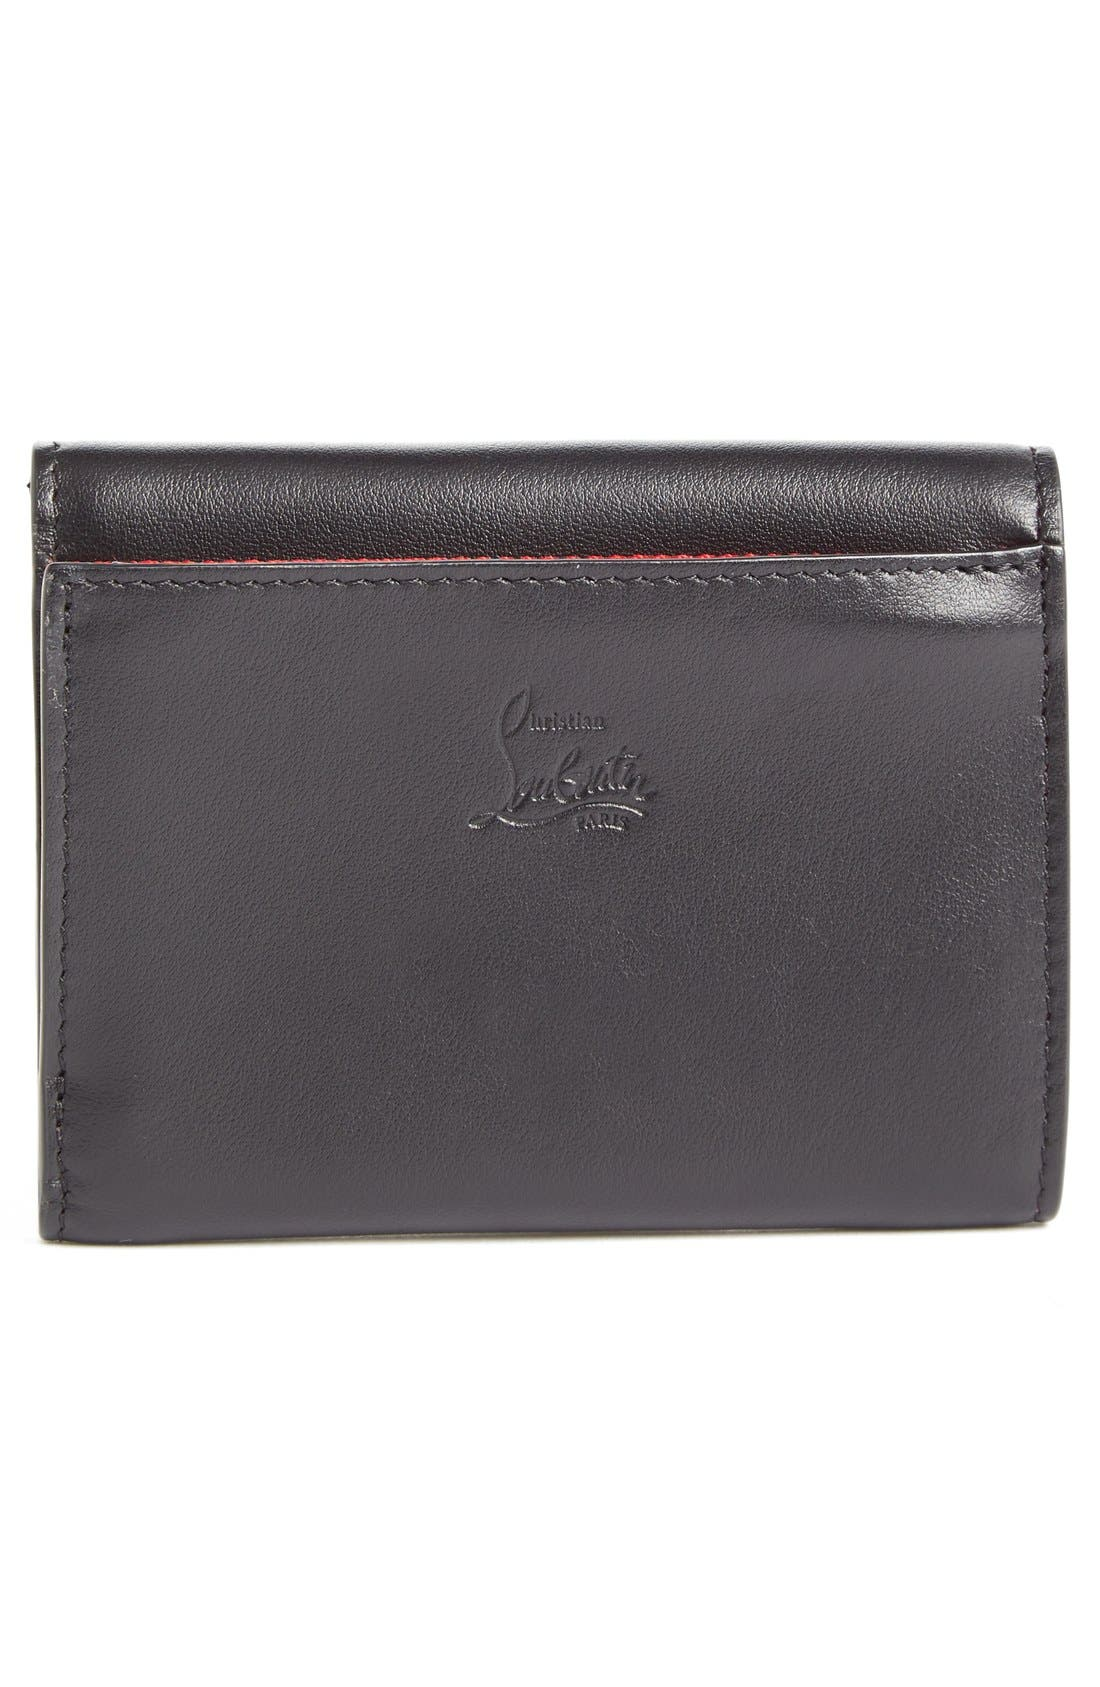 Macaron Leather French Wallet,                             Alternate thumbnail 2, color,                             003